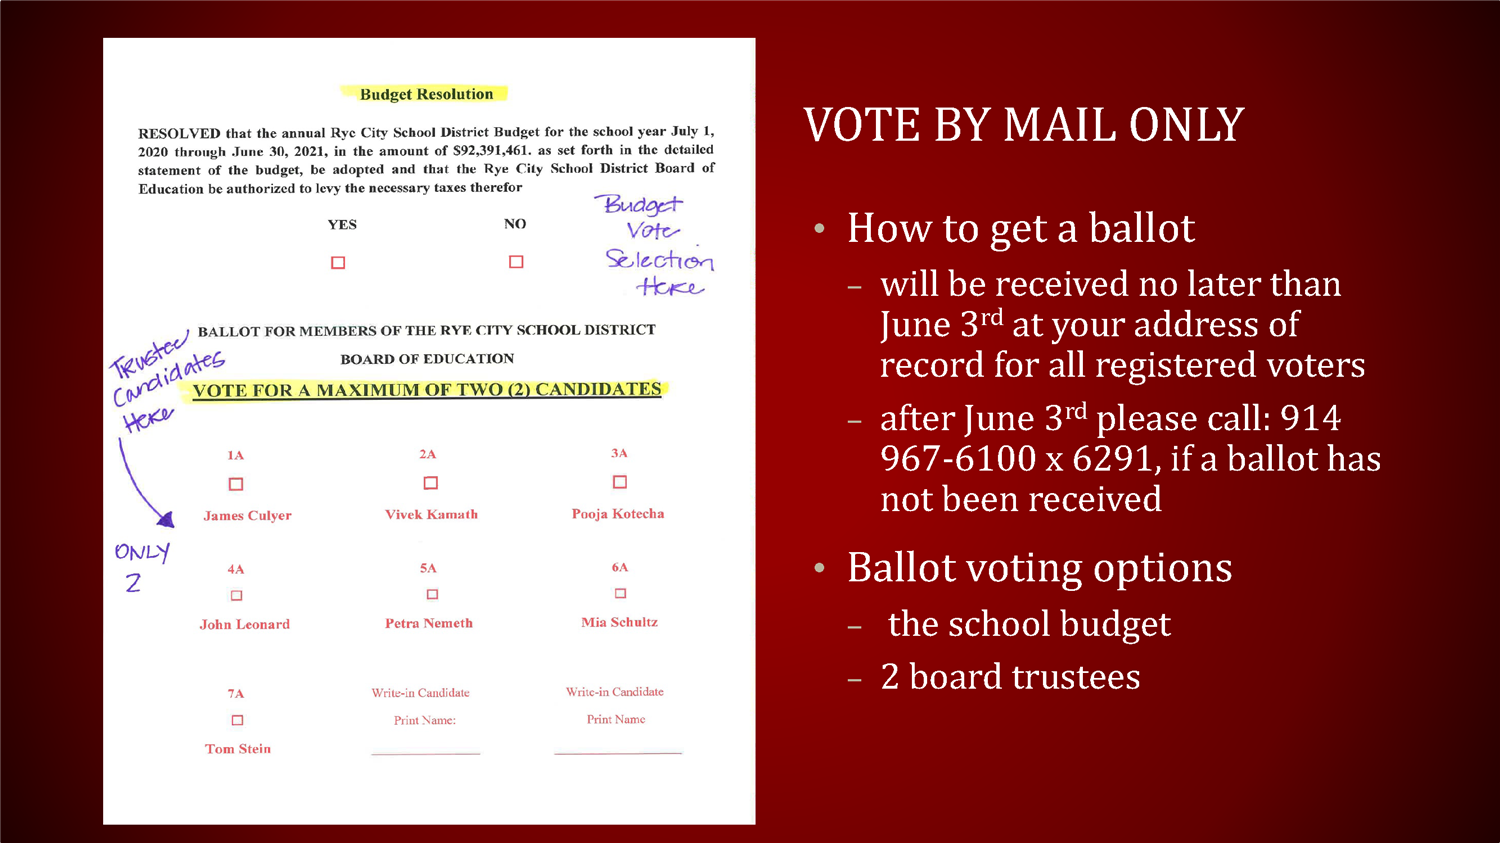 Vote By Mail Only Instructions